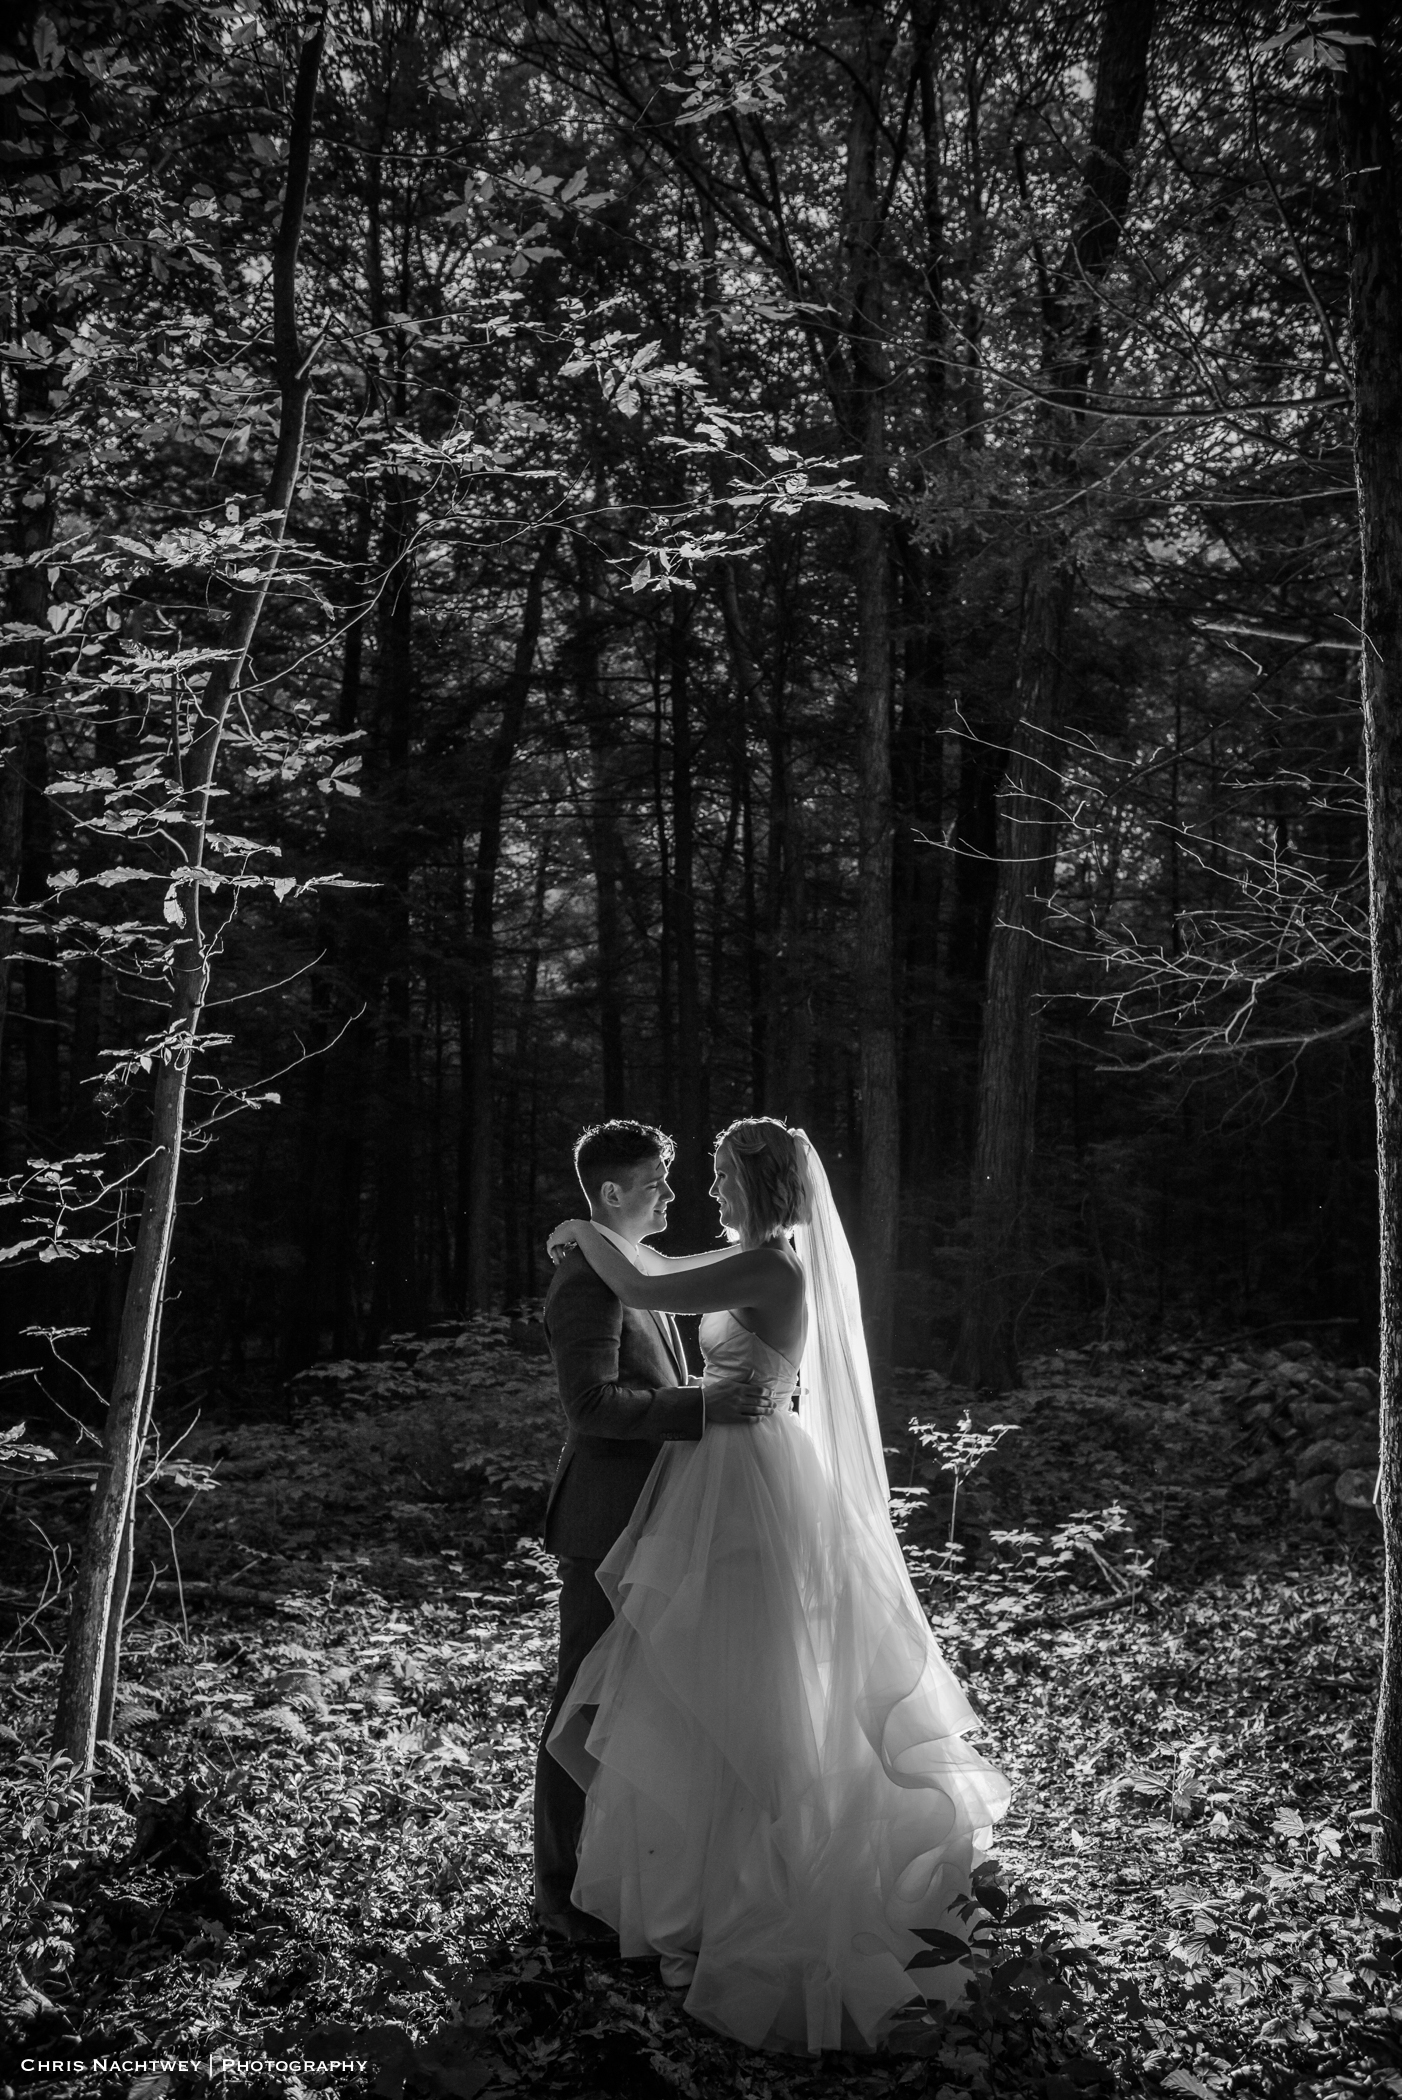 artistic-wedding-photographer-granby-connecticut-chris-nachtwey-photography-2018-35.jpg